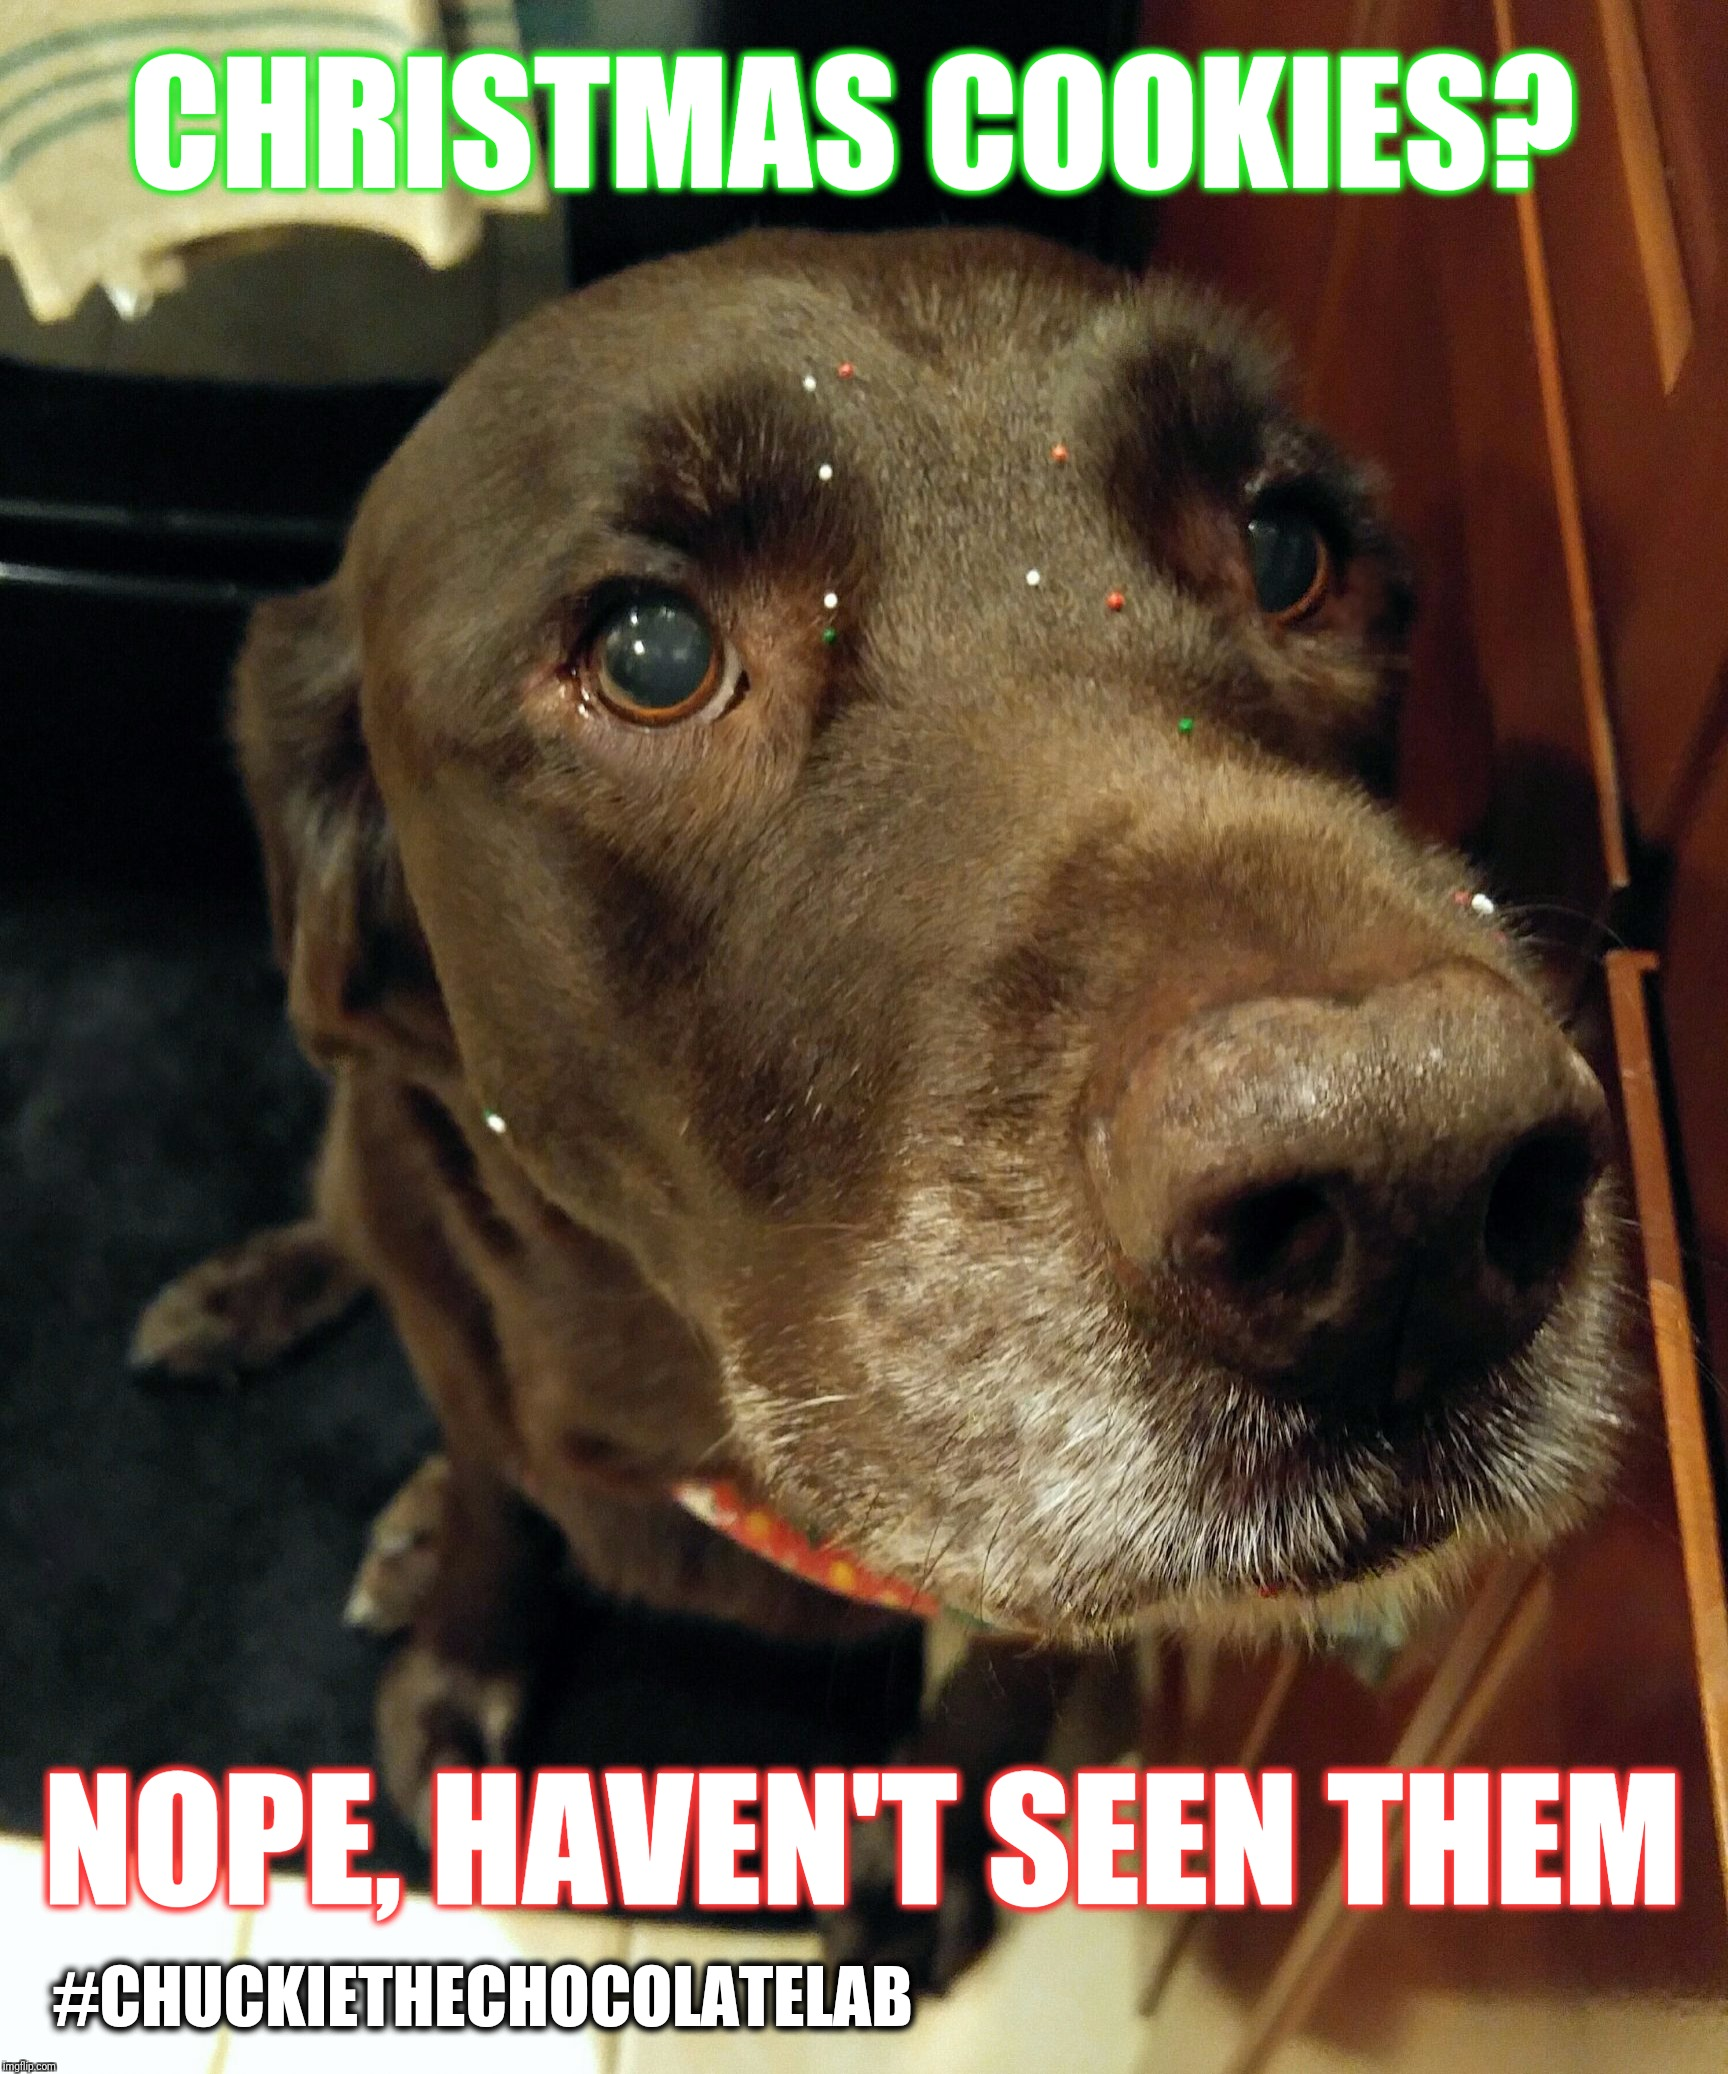 Christmas cookies?  | CHRISTMAS COOKIES? NOPE, HAVEN'T SEEN THEM #CHUCKIETHECHOCOLATELAB | image tagged in chuckie the chocolate lab teamchuckie,dogs,funny,memes,christmas,holidays | made w/ Imgflip meme maker